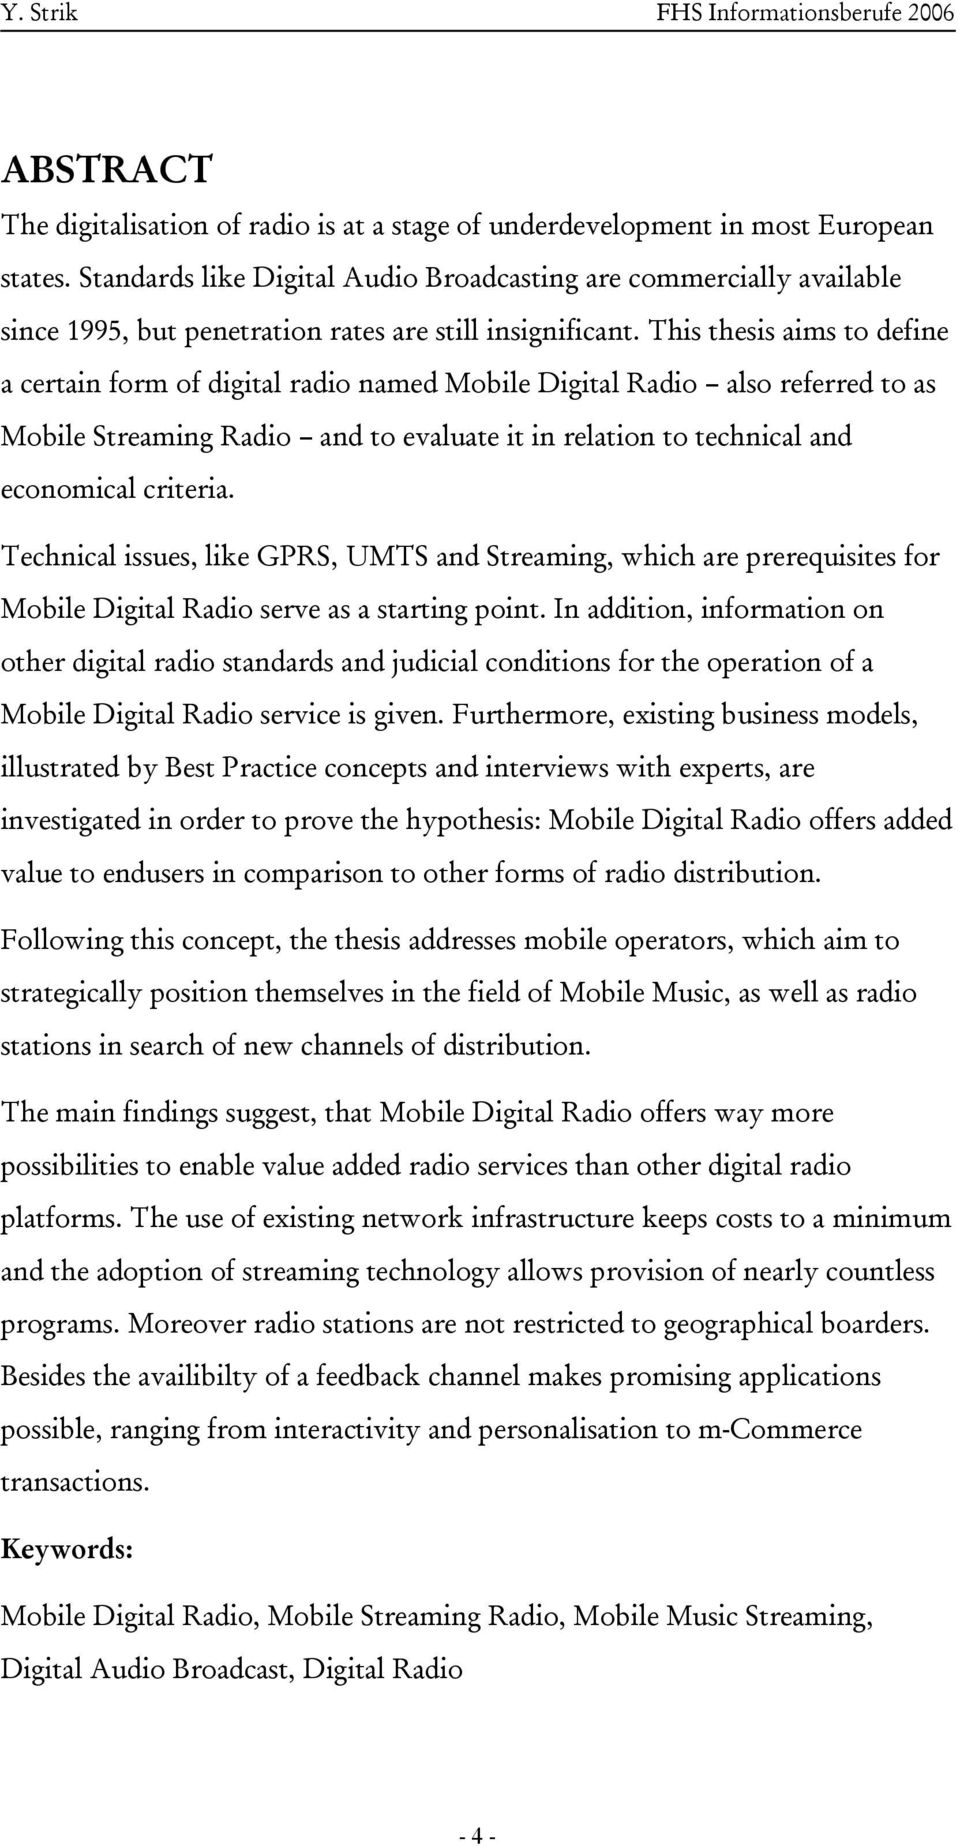 This thesis aims to define a certain form of digital radio named Mobile Digital Radio also referred to as Mobile Streaming Radio and to evaluate it in relation to technical and economical criteria.